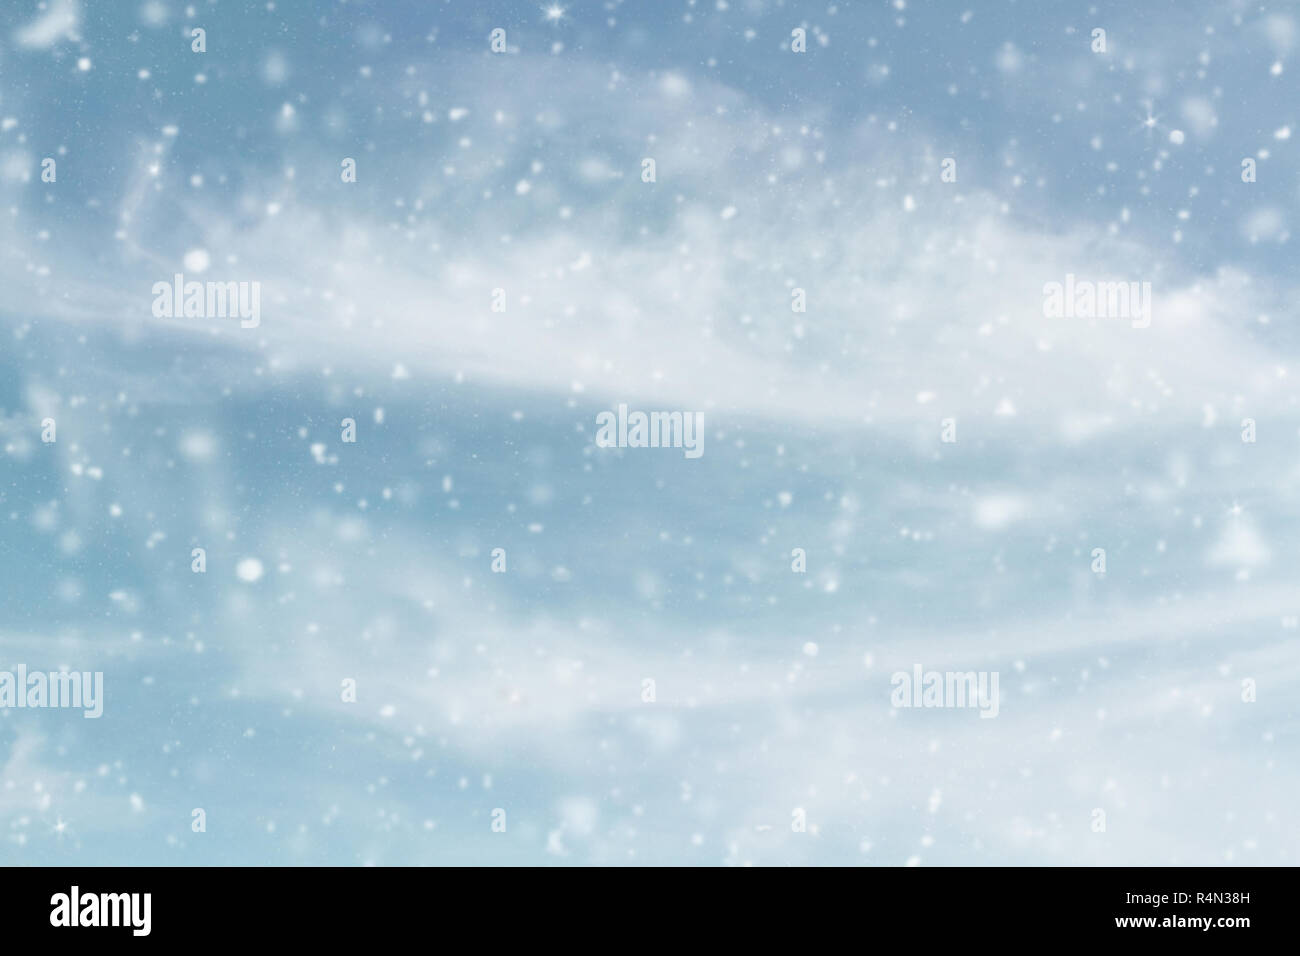 Snowy wintry sky. Blurred background of snow falling against cool blue cloudy sky during a winter storm. - Stock Image